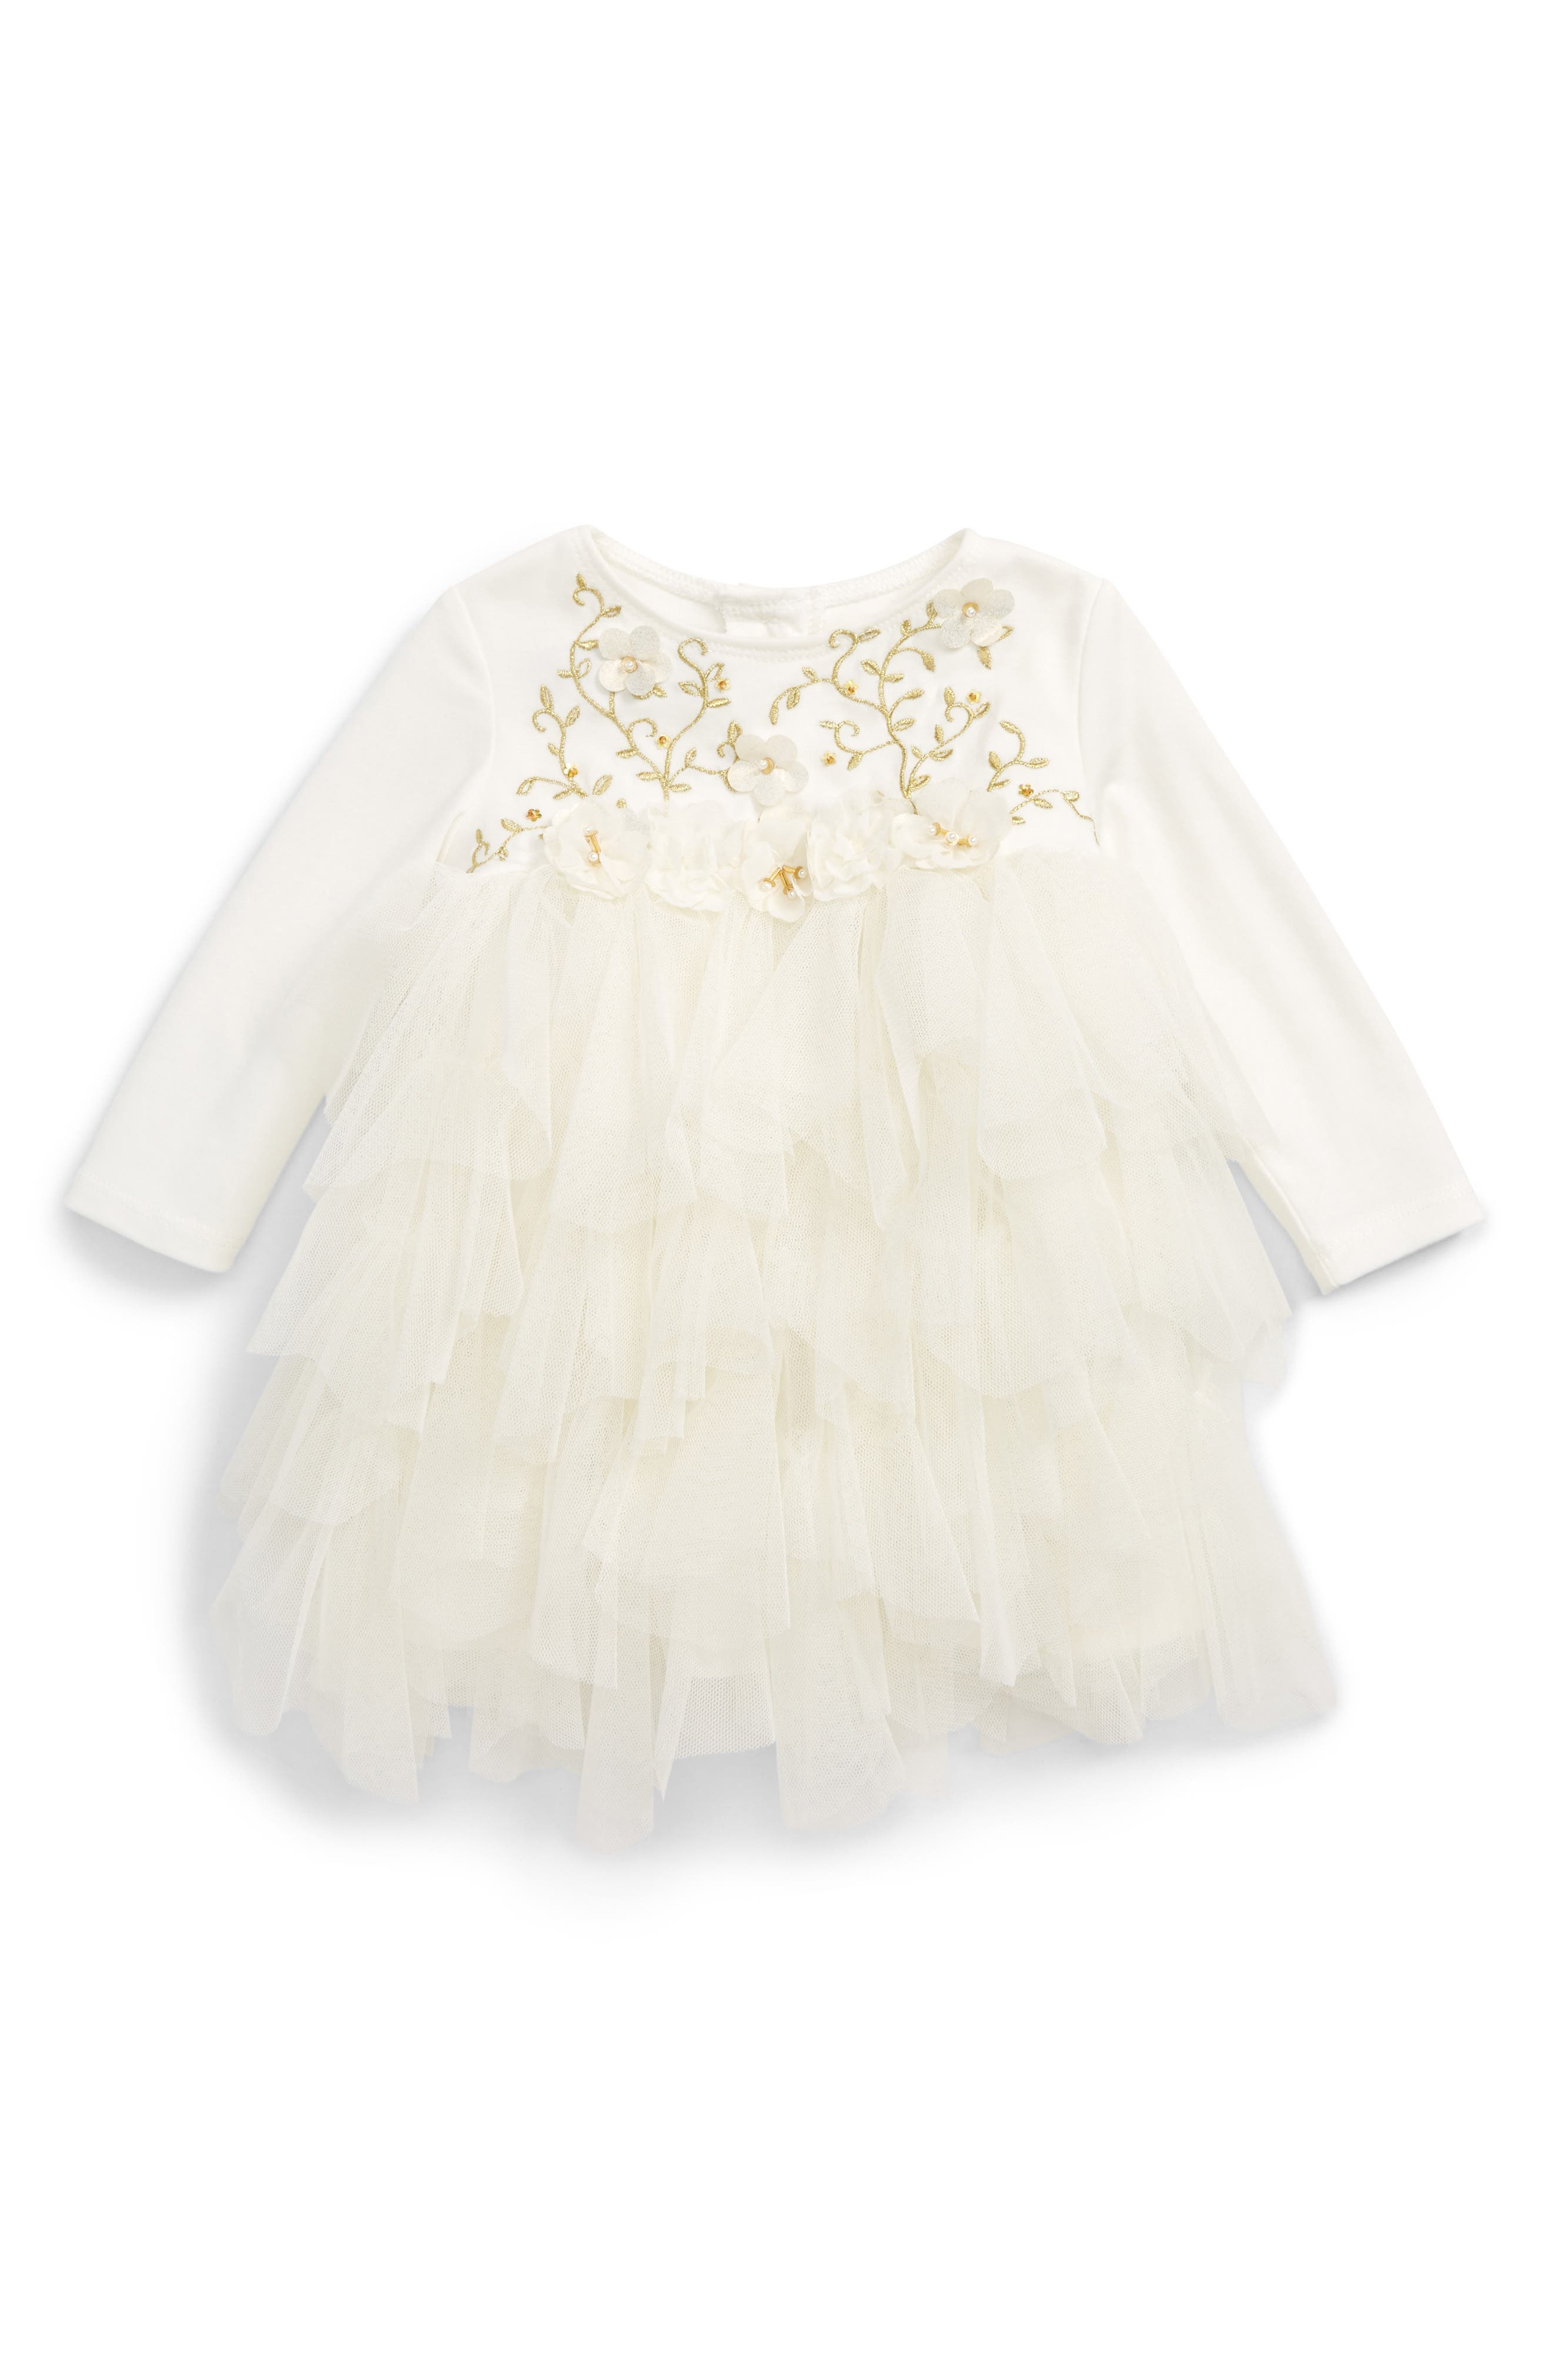 Embroidered Bodice Dress,                         Main,                         color, Ivory